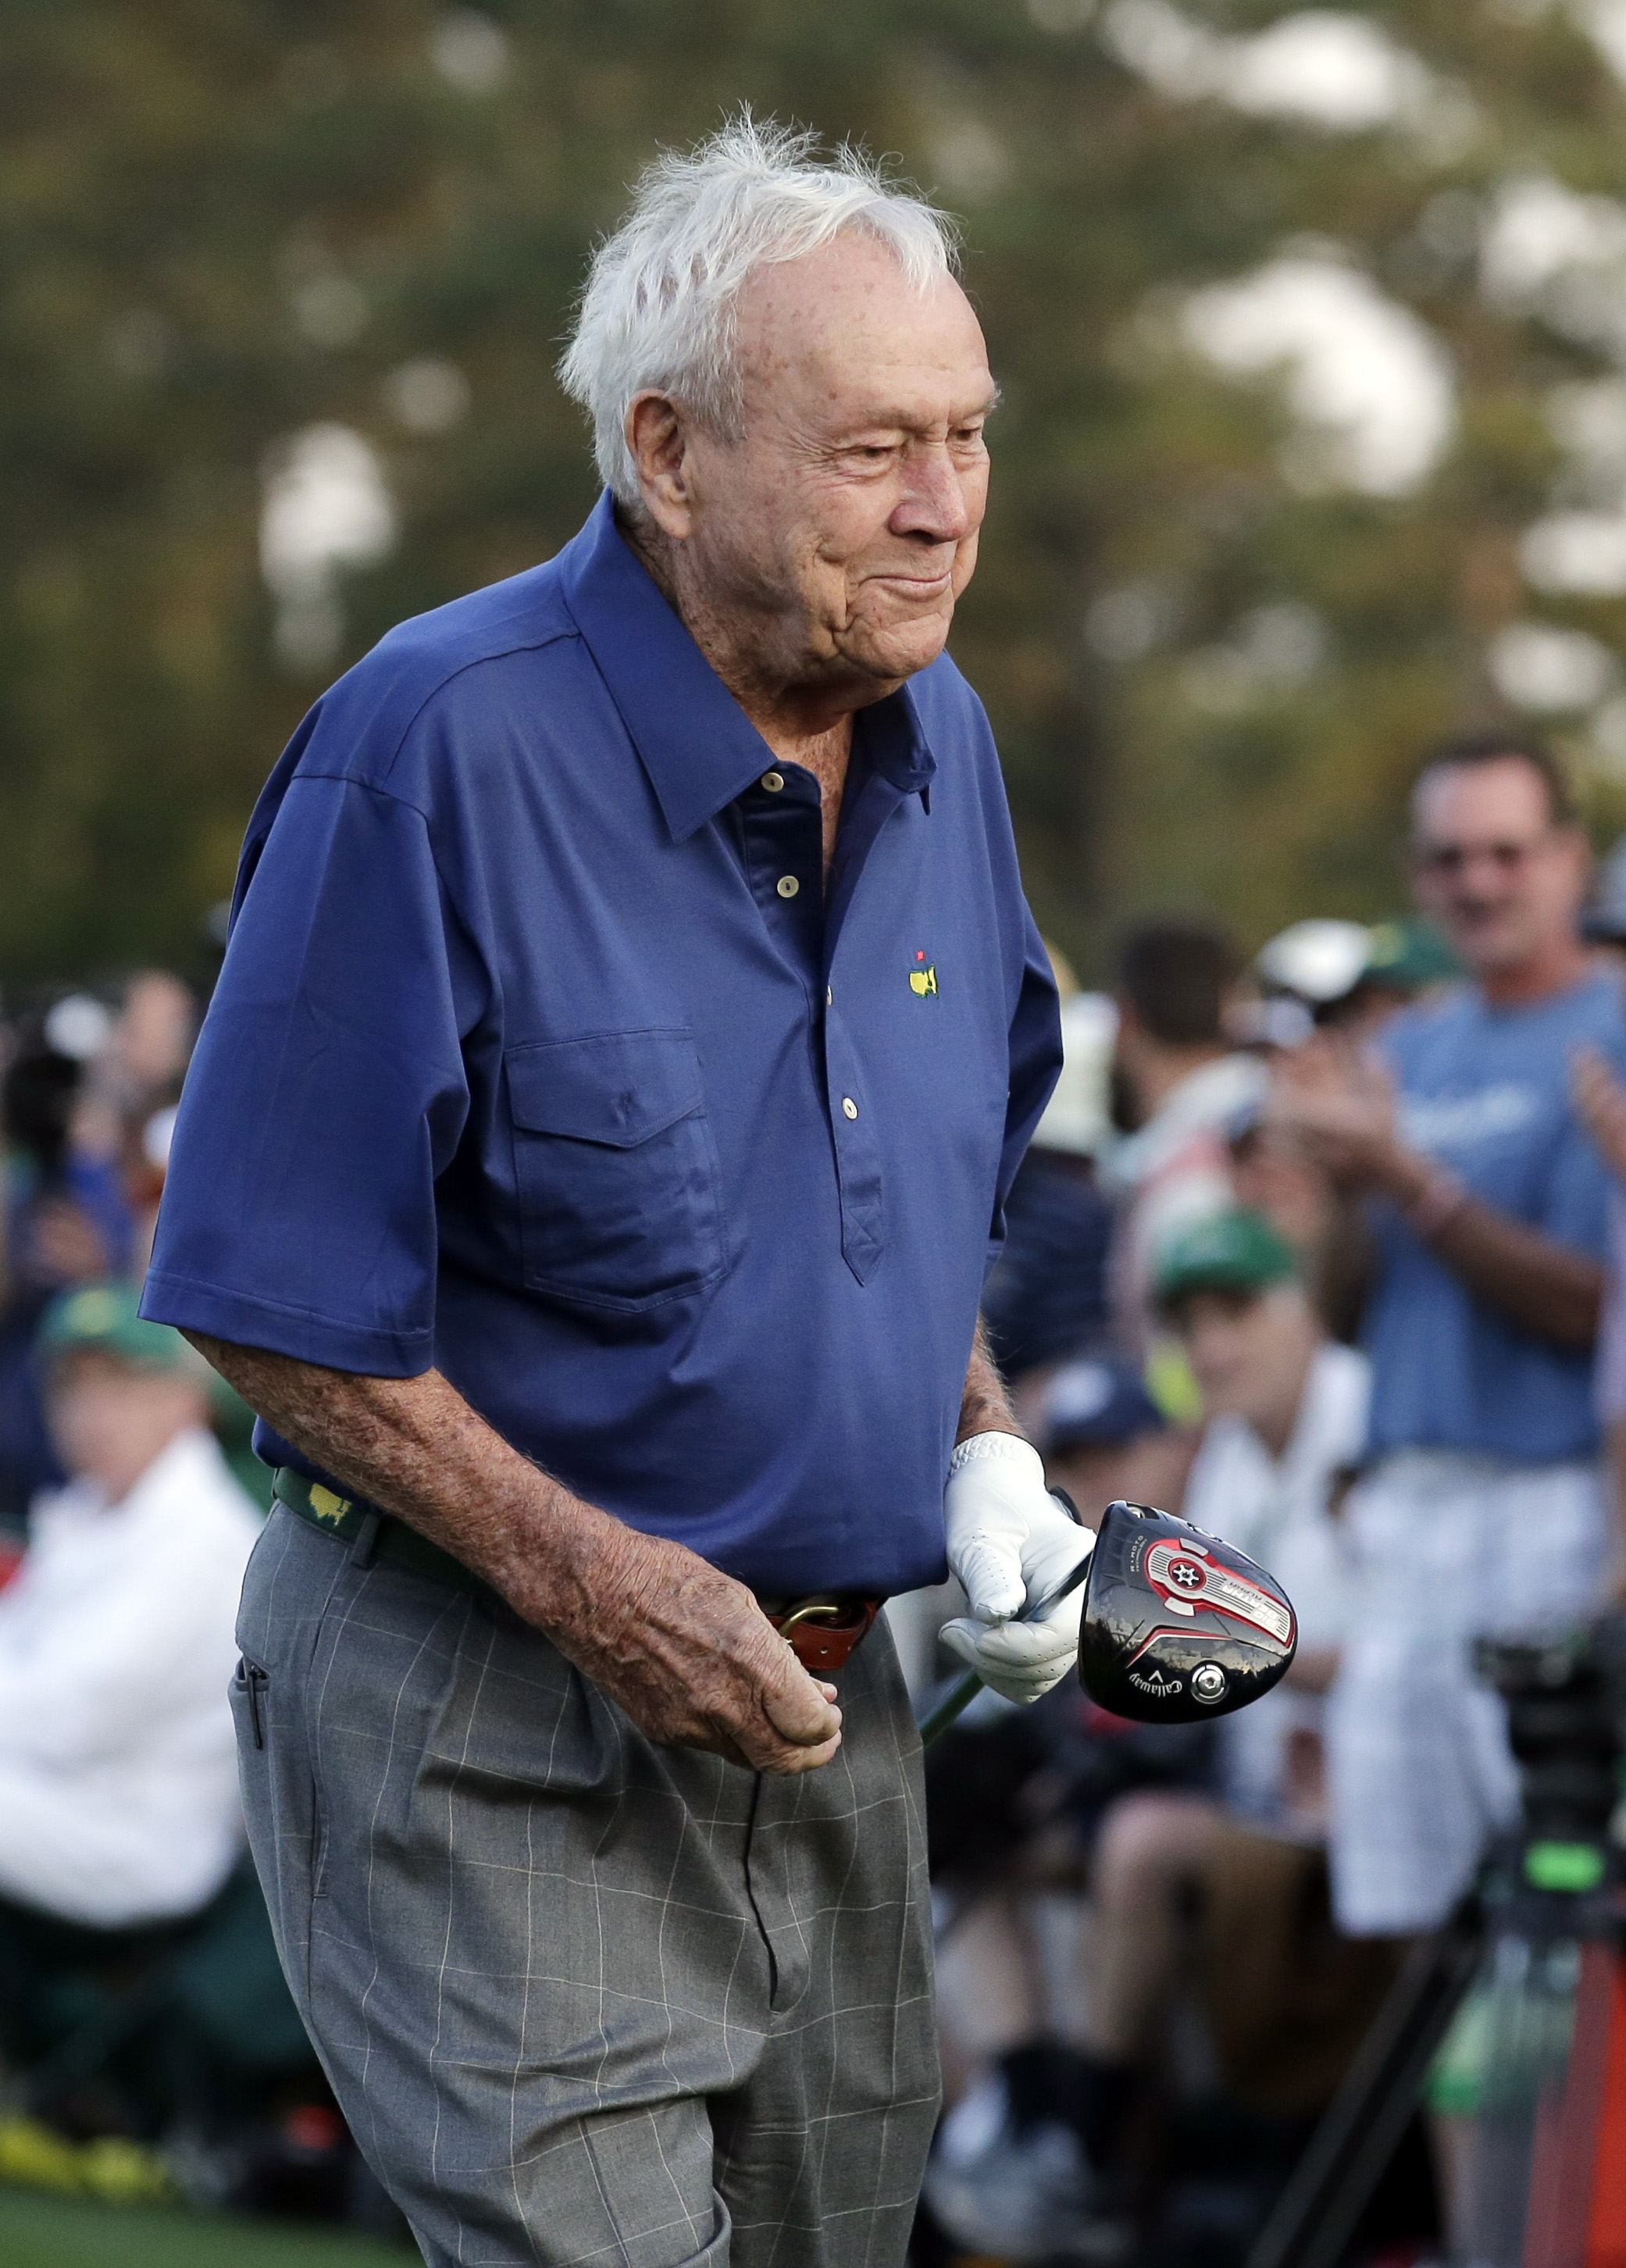 Arnold Palmer walks off the first tee after his honorary tee shot before the first round of the Masters golf tournament Thursday, April 9, 2015, in Augusta, Ga. (AP Photo/Chris Carlson)